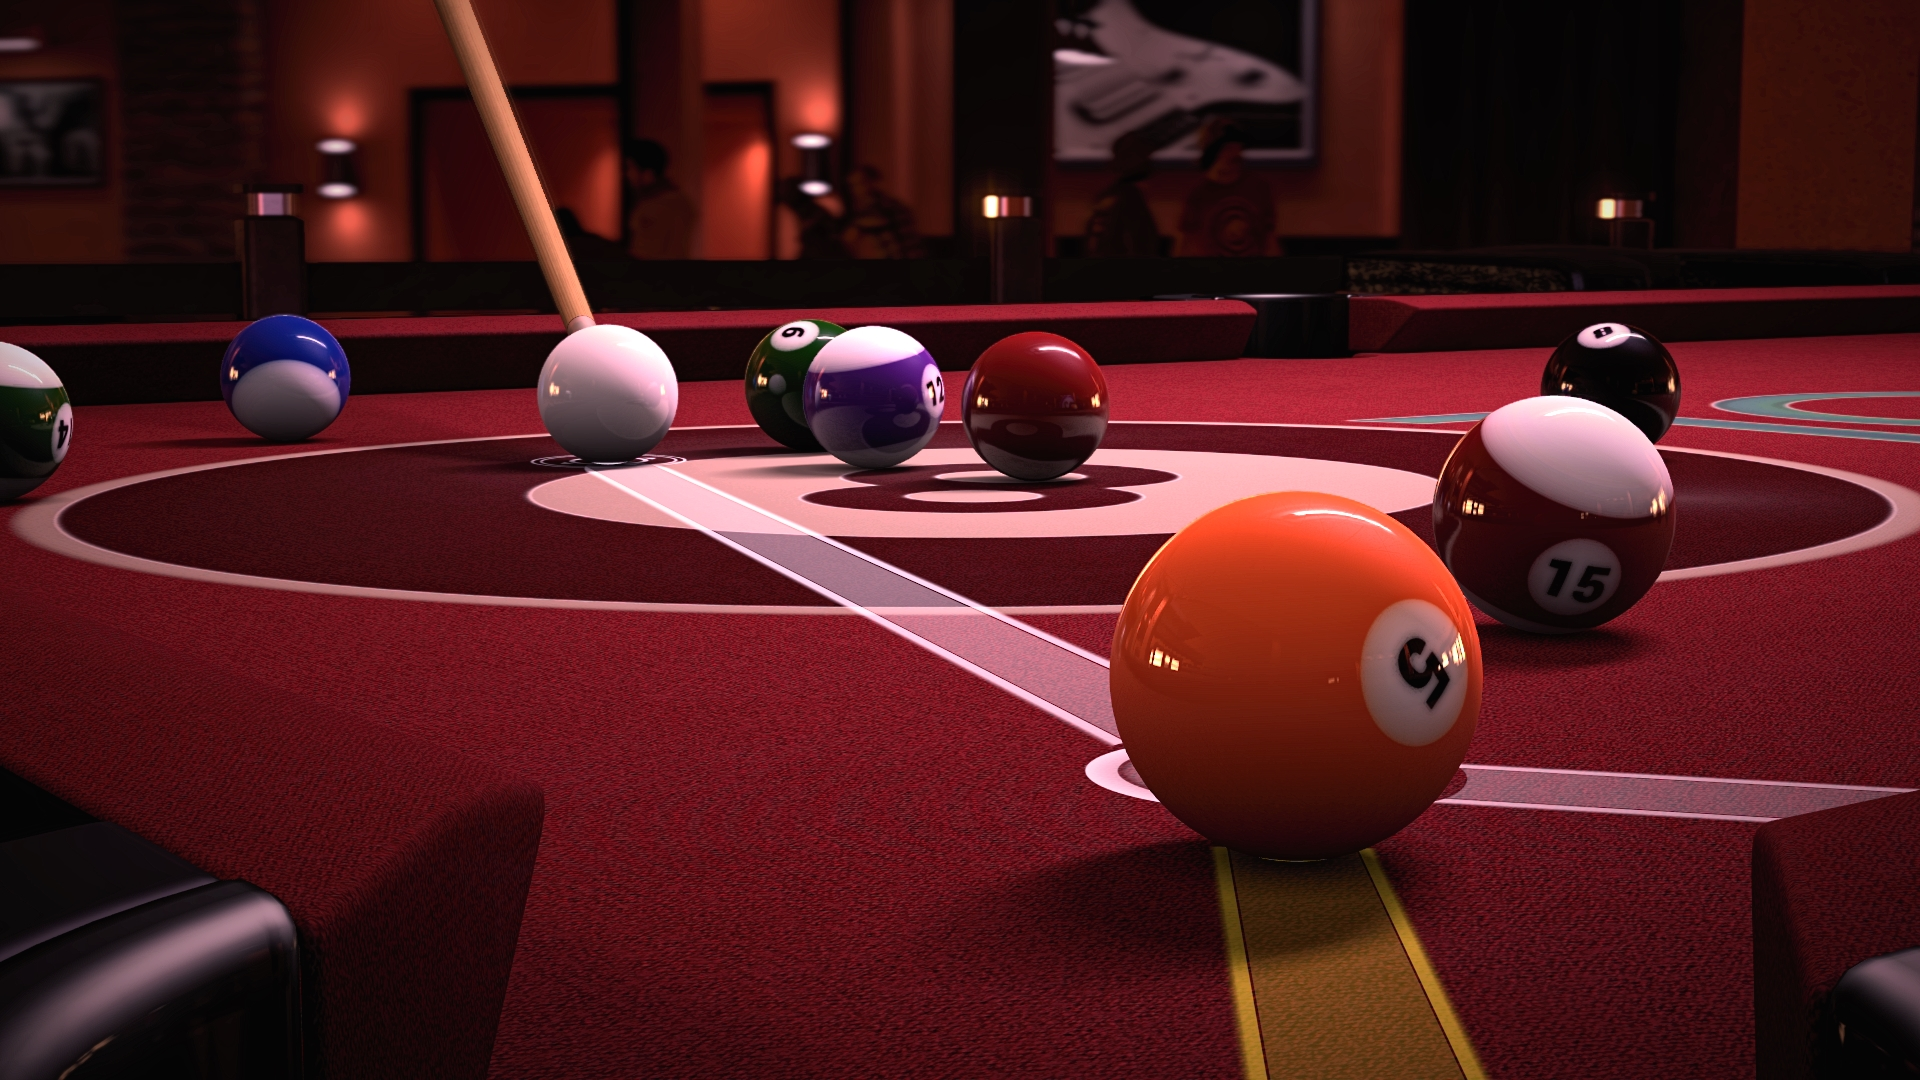 Online Features Of Pool Table Felt